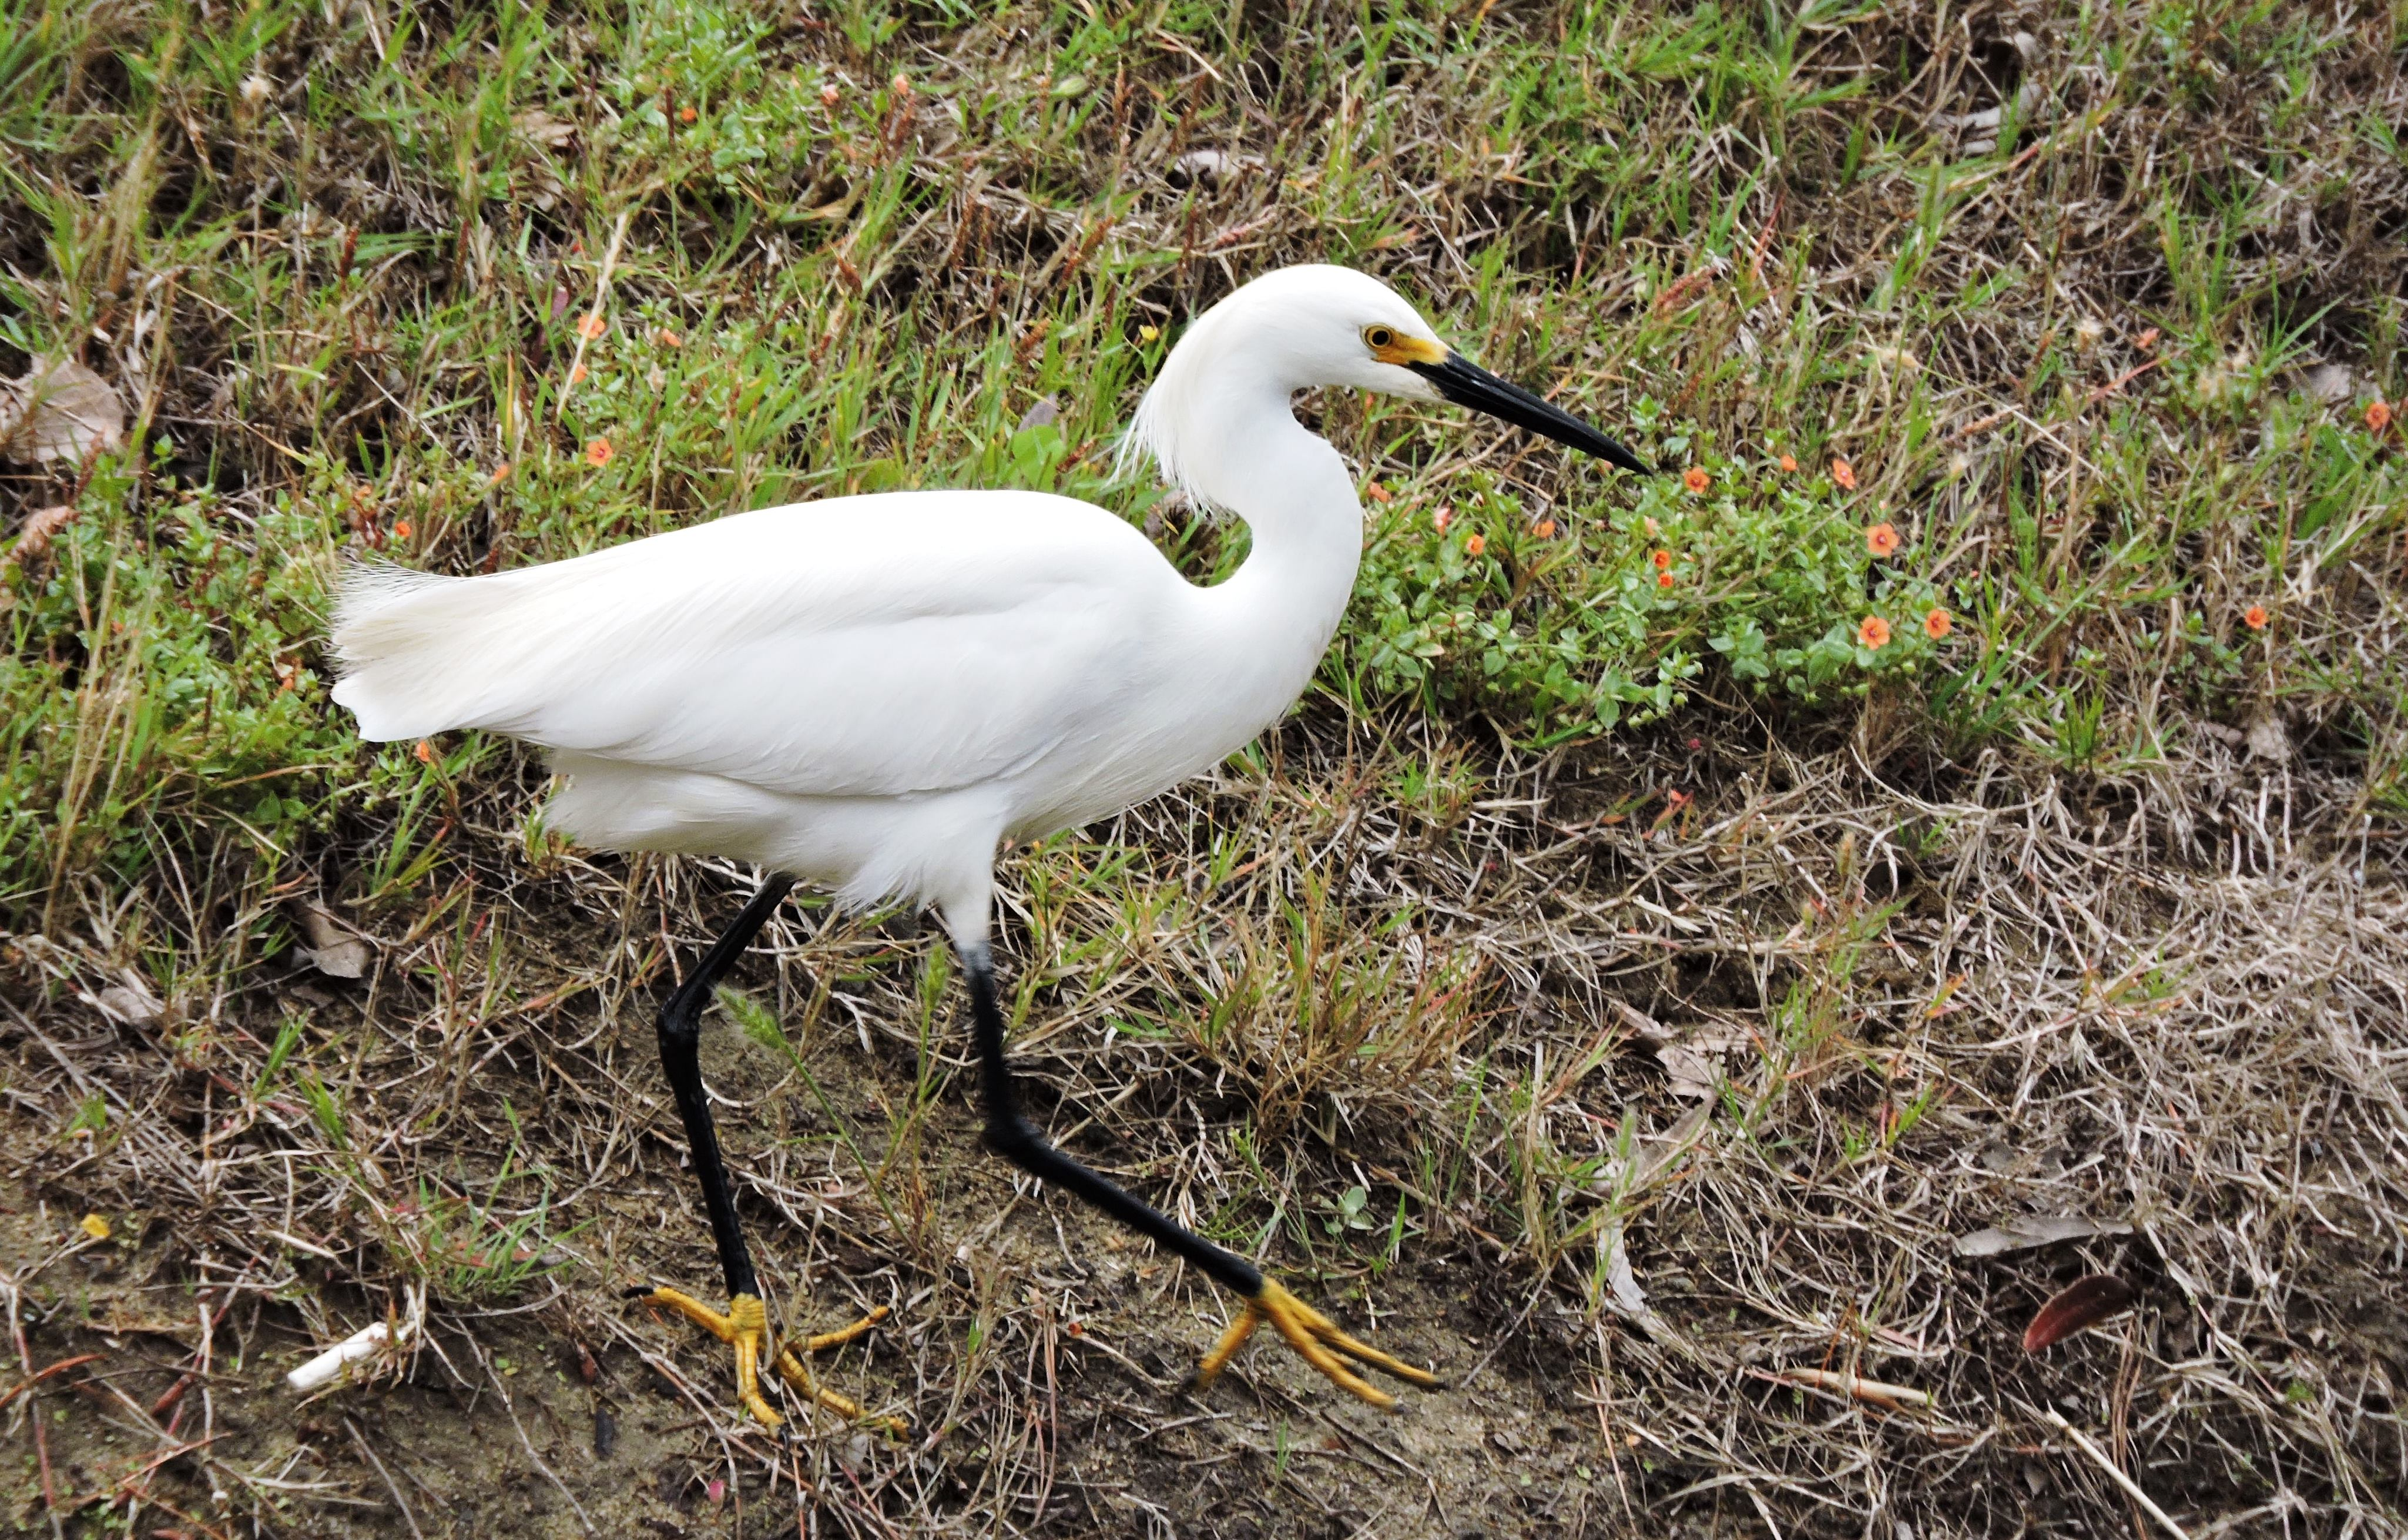 Snowy  Egret photo by Preserve Ranger Todd Nordness